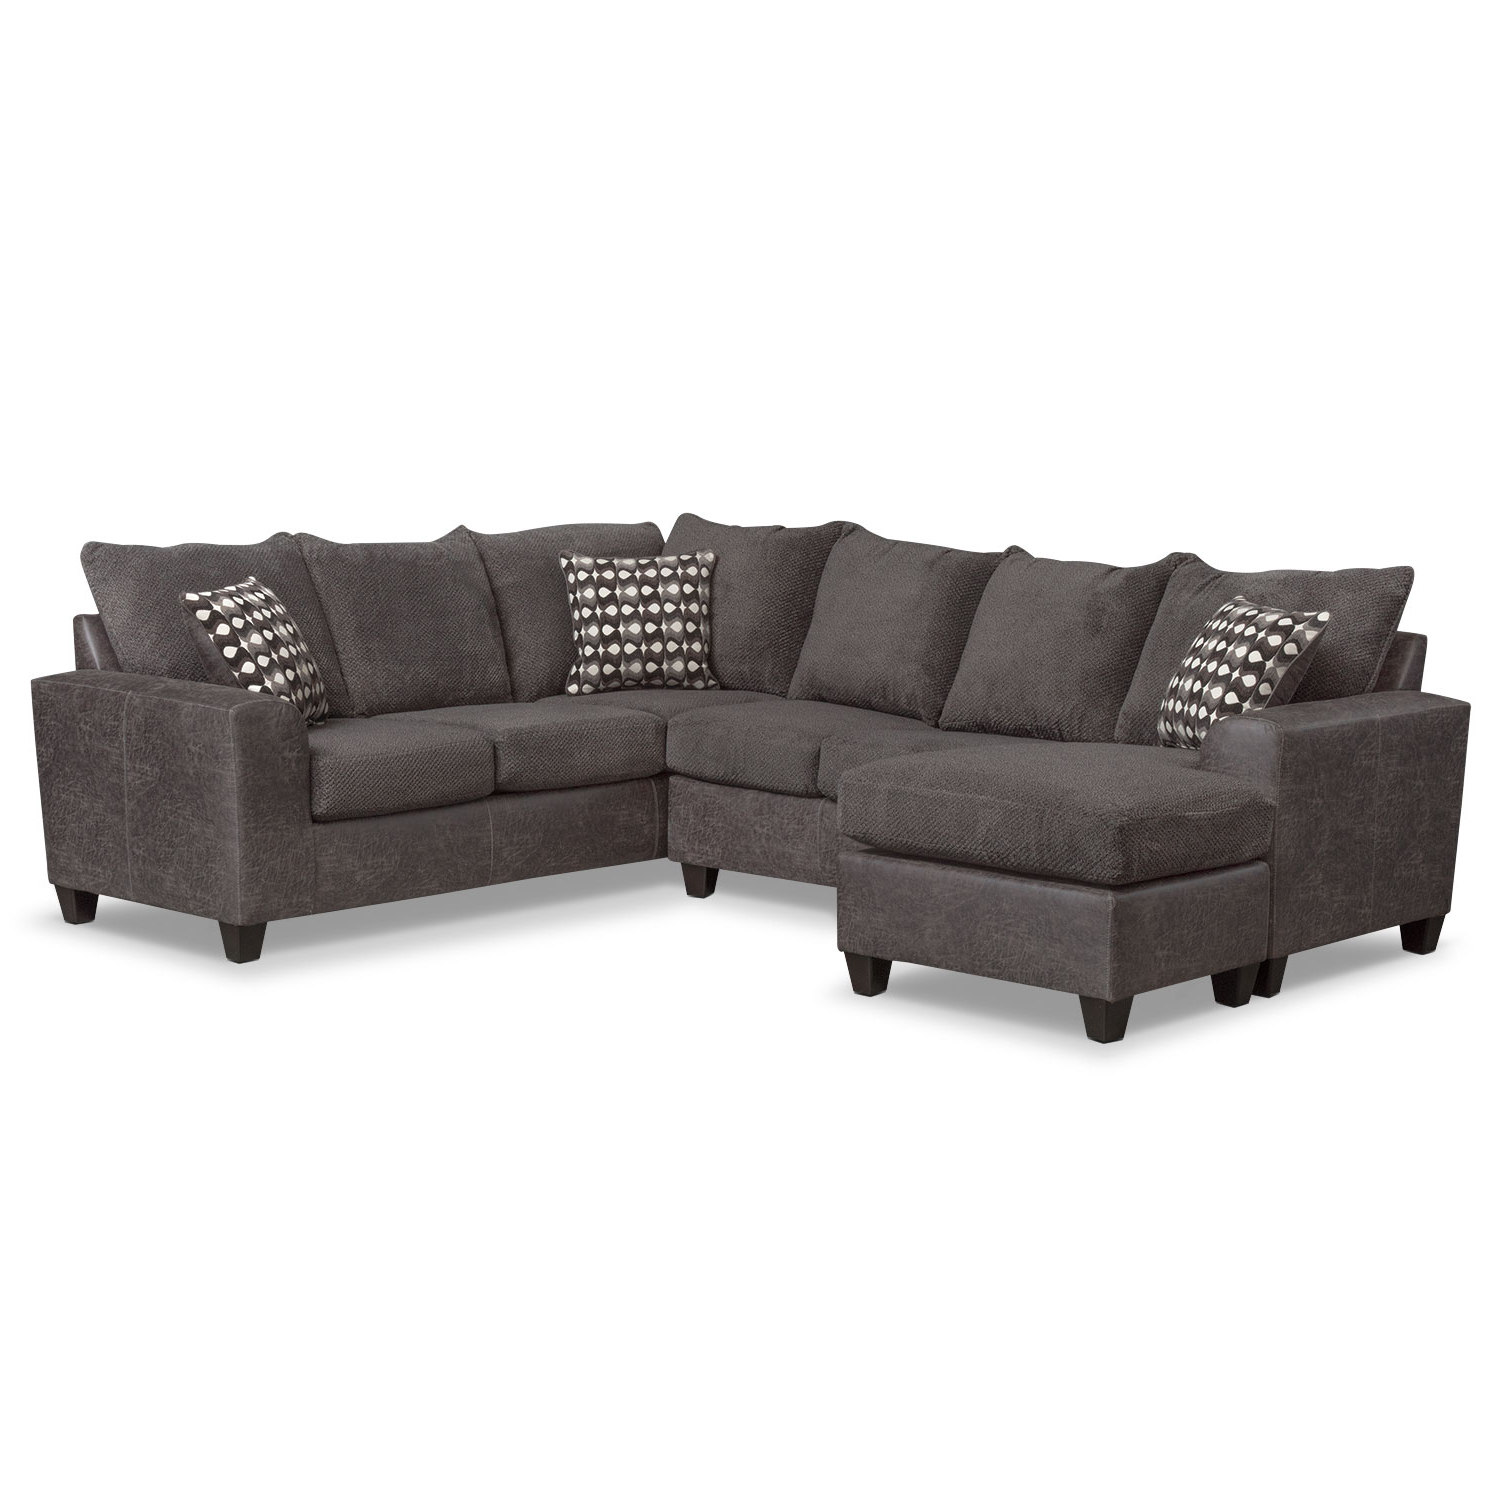 Brando 3 Piece Sectional With Chaise And Swivel Chair Set (Gallery 16 of 20)